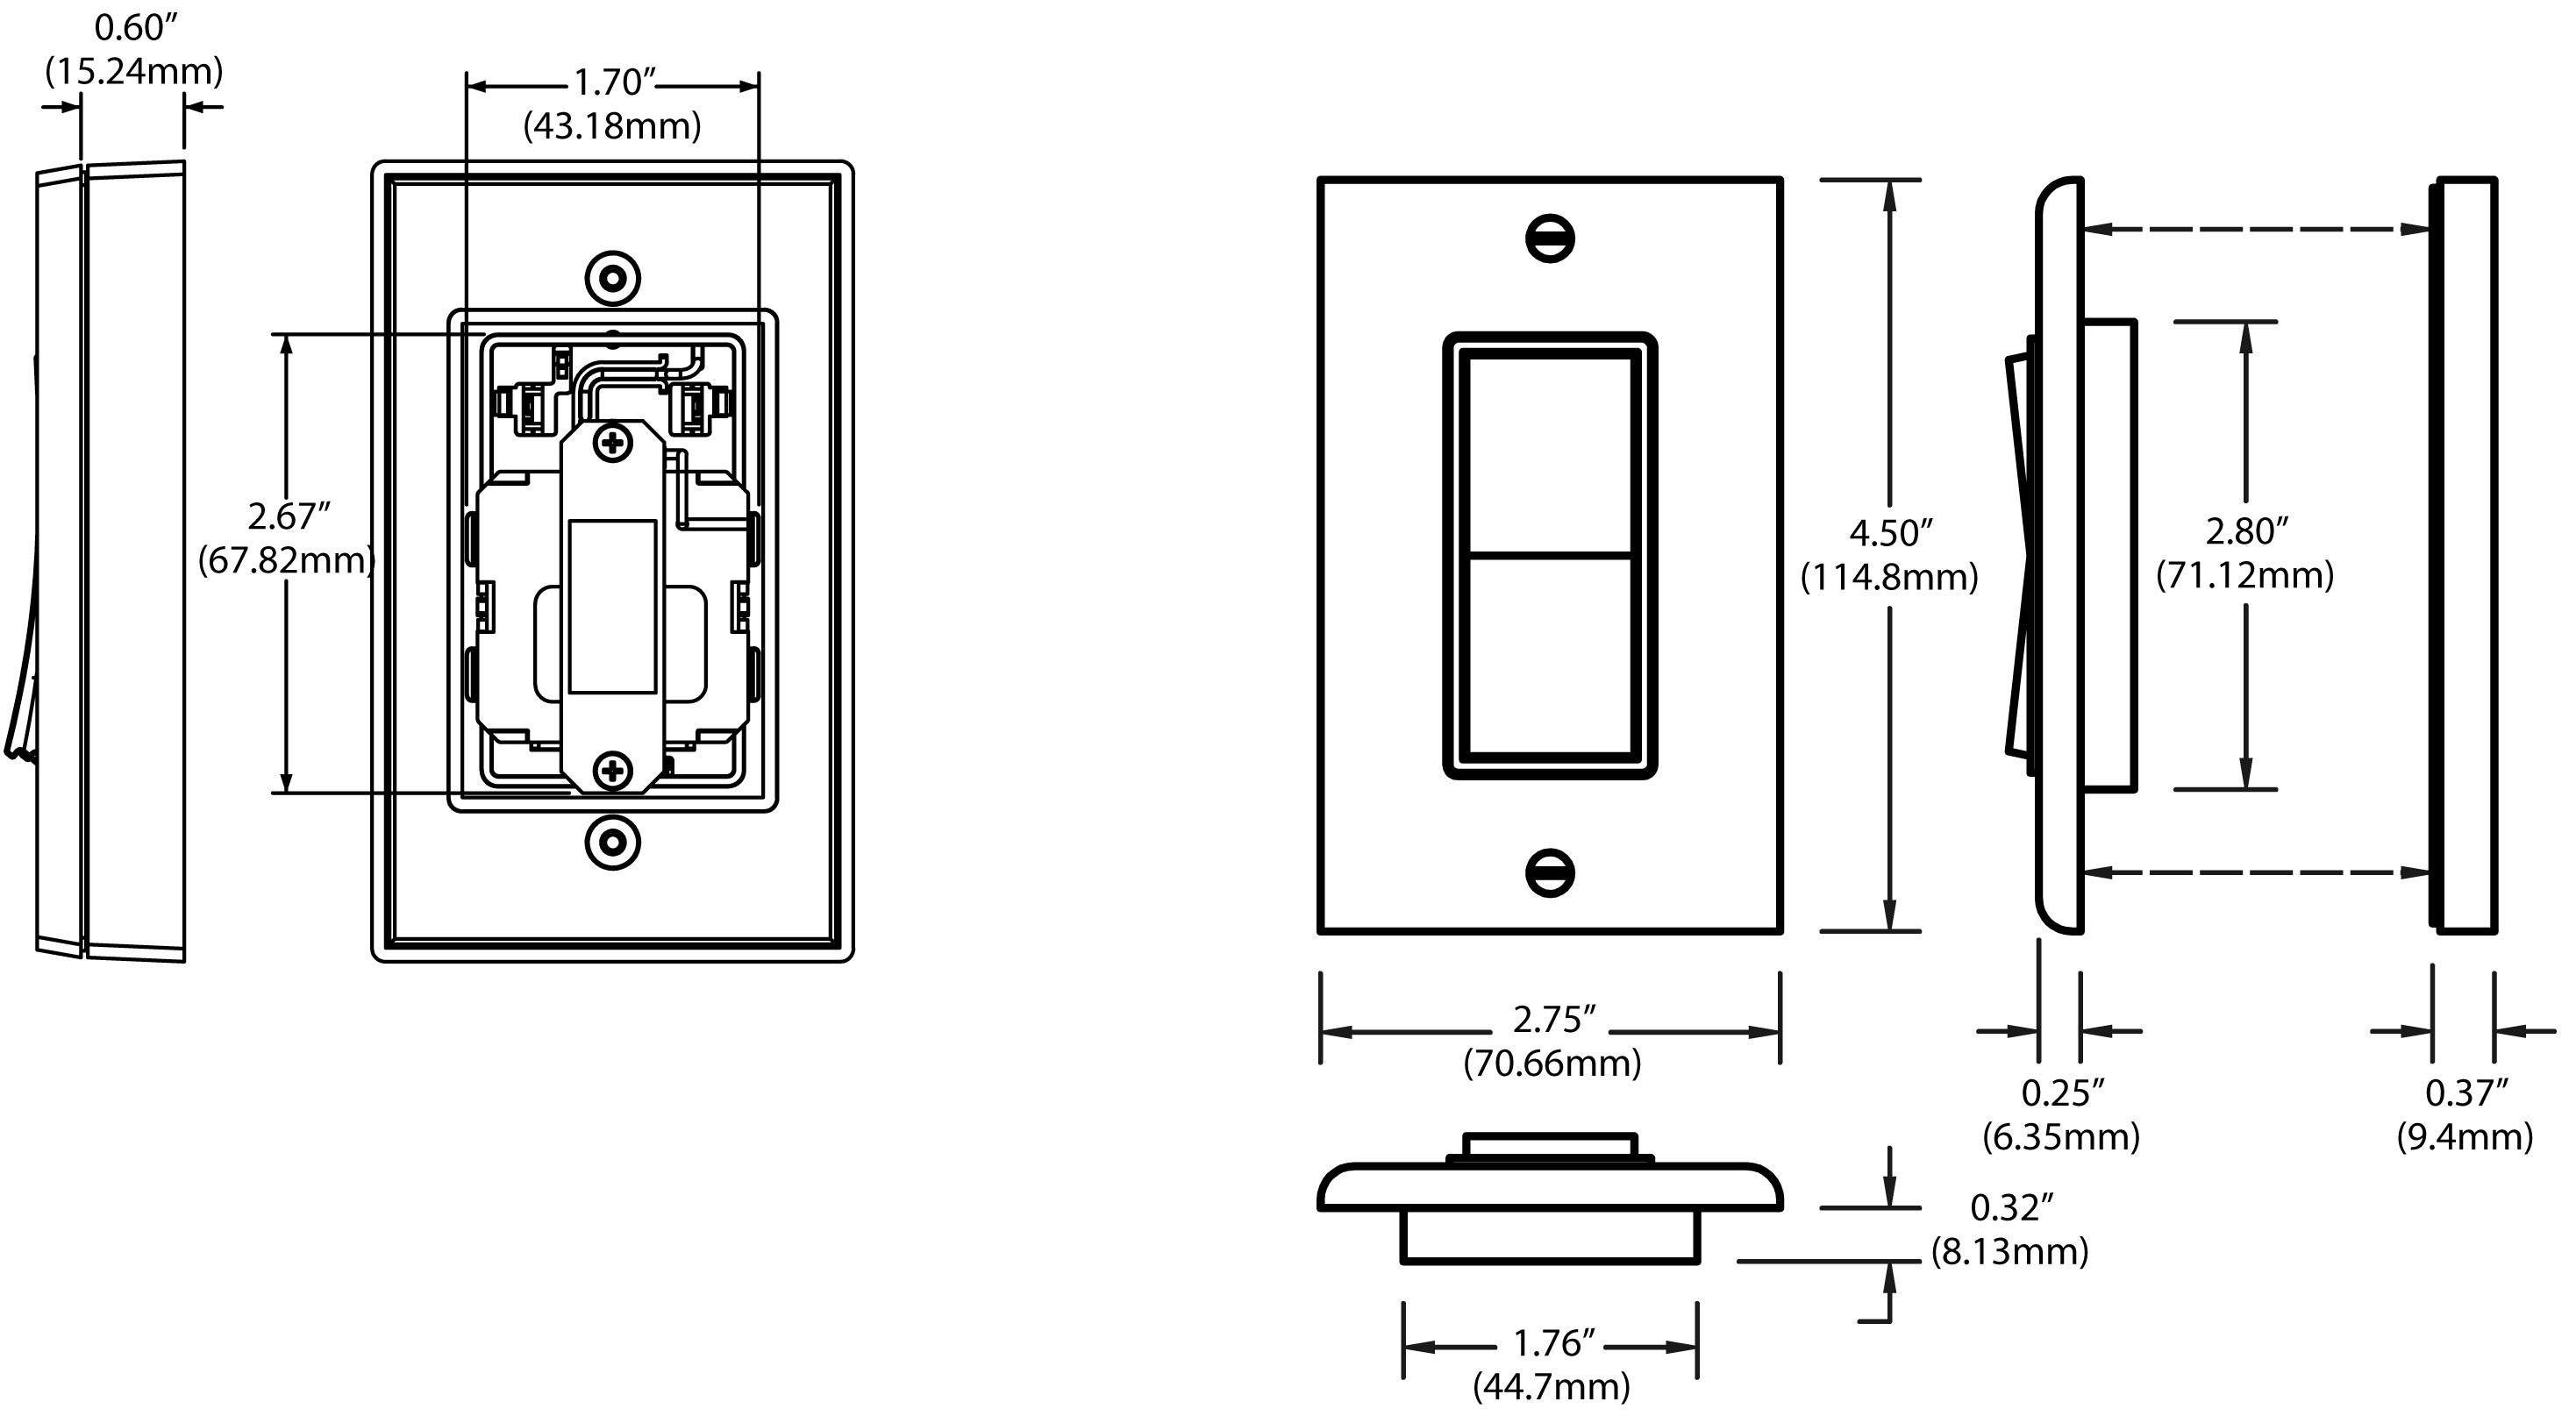 BottomILarge._V390024919_ leviton wss0s p0w wireless self powered remote switch, white leviton light switch wiring diagram at soozxer.org